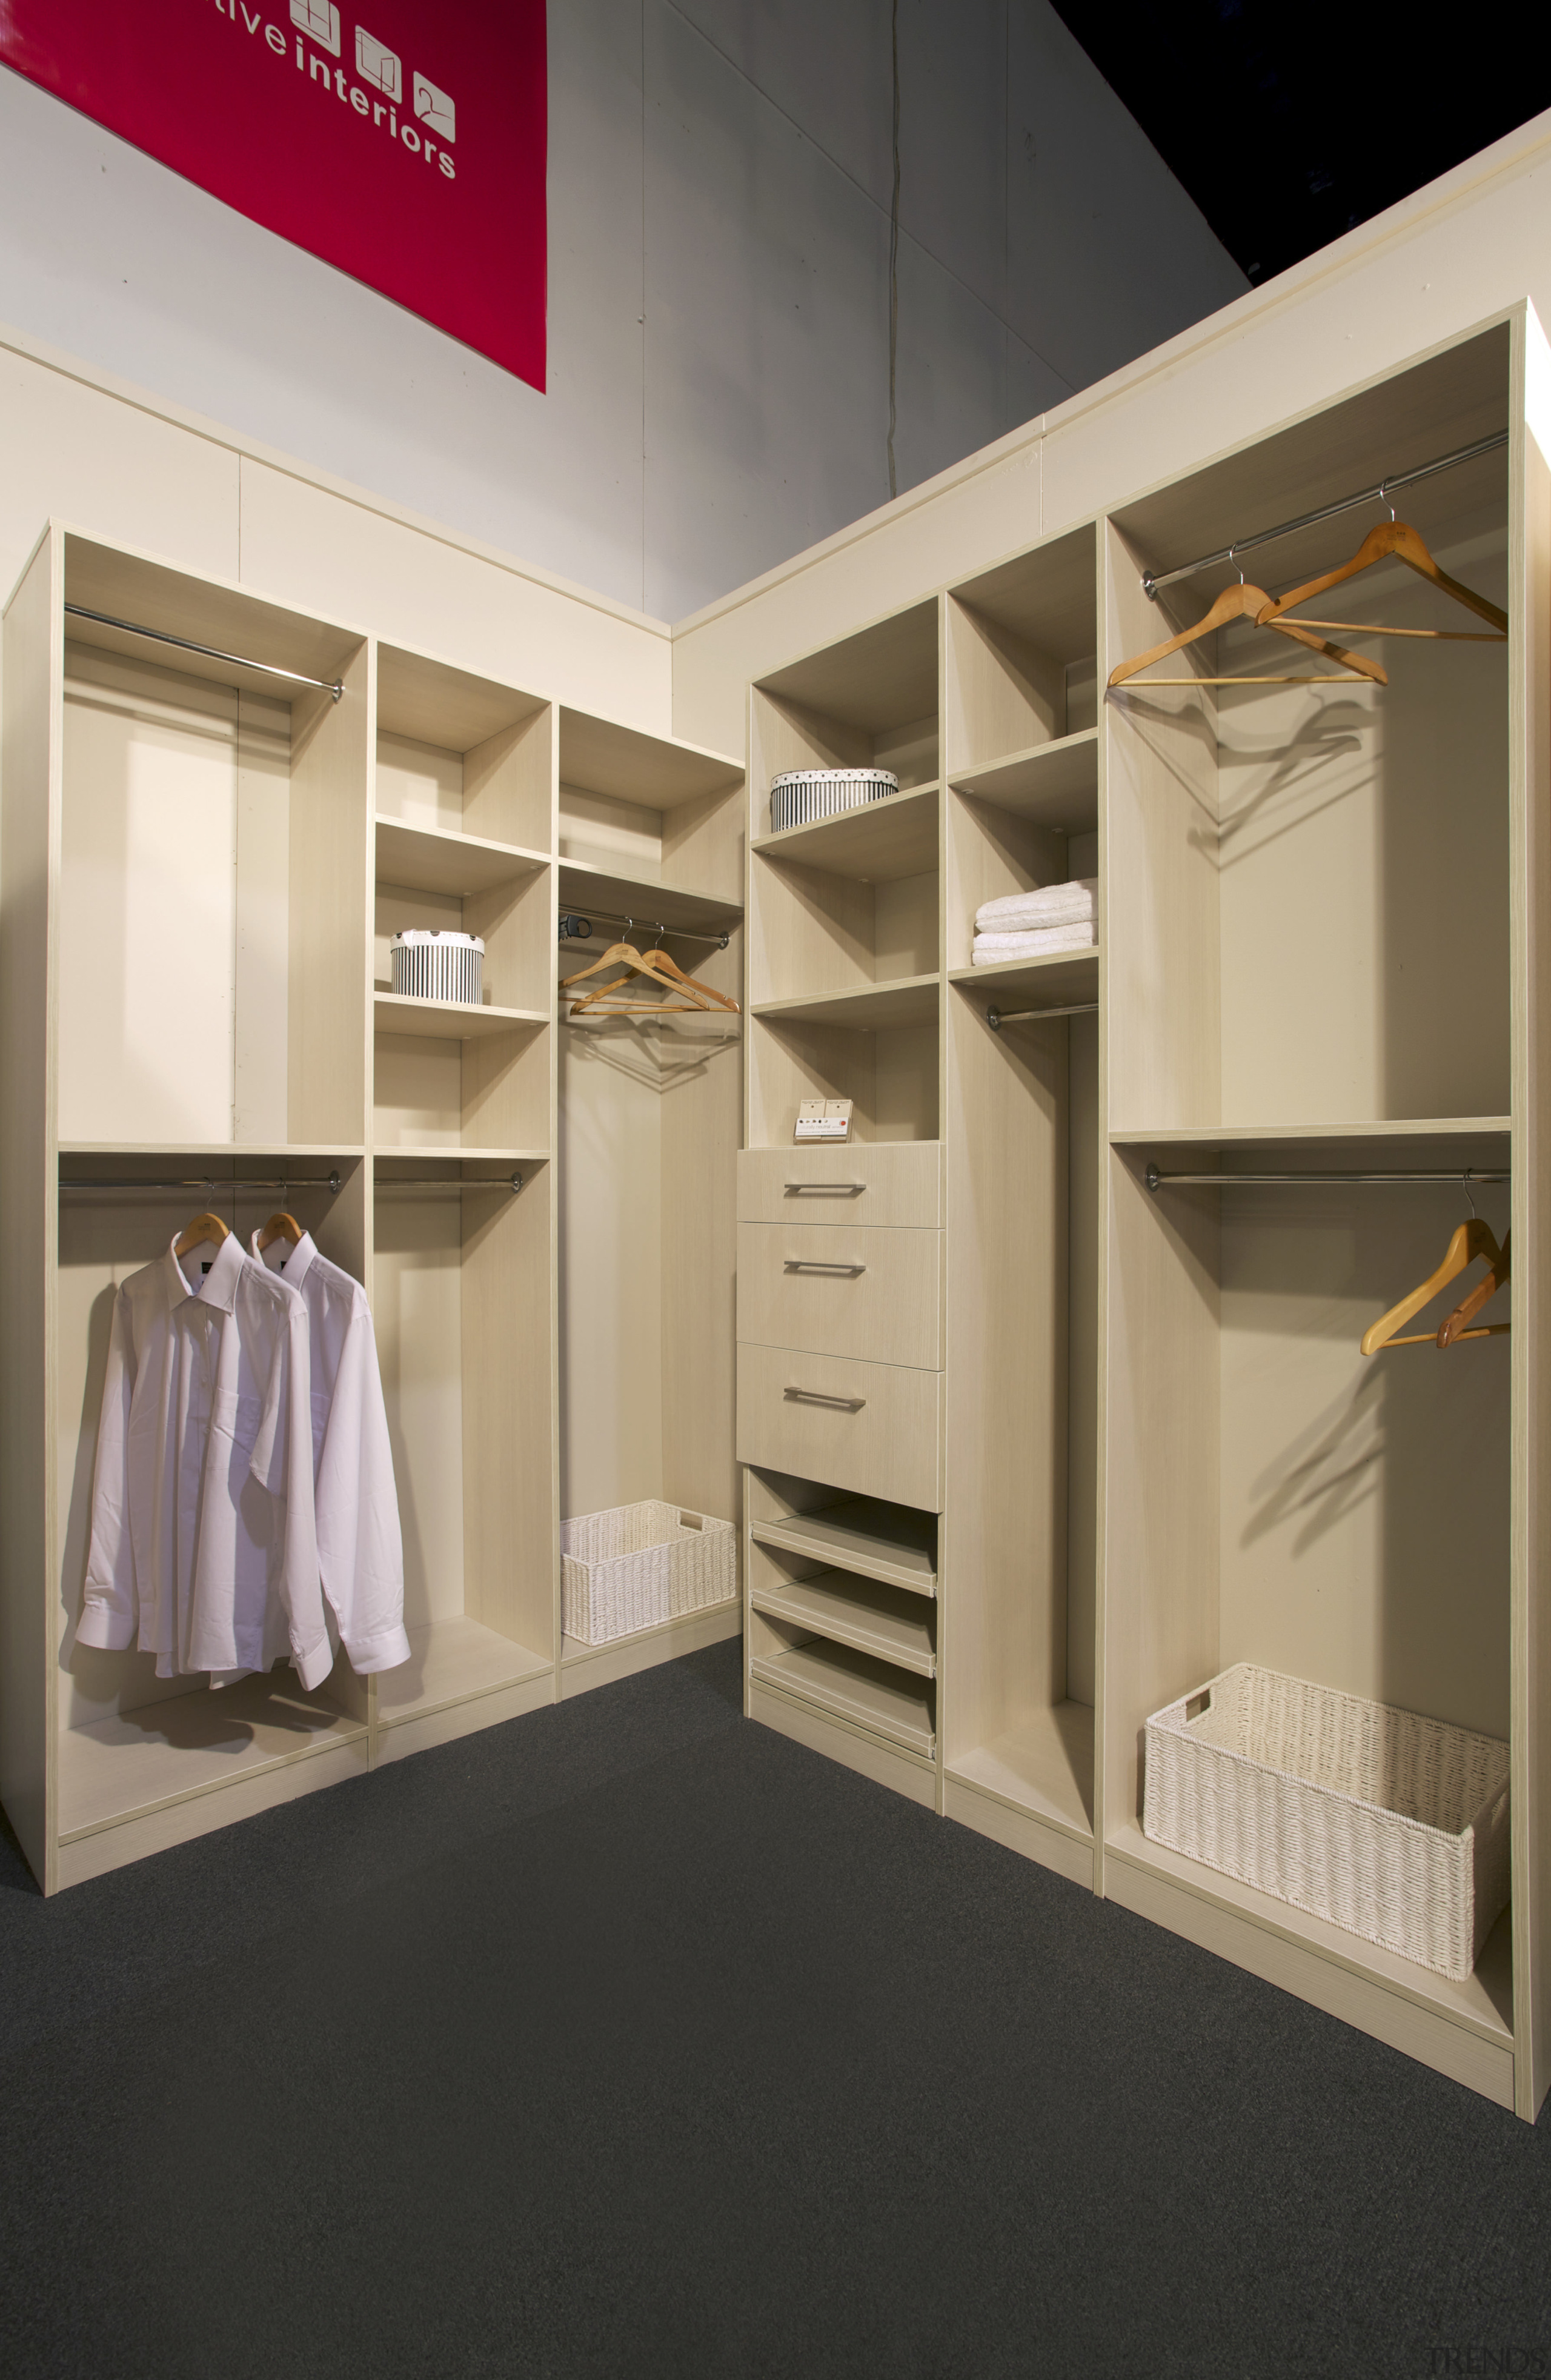 View of the bedroom cabinetry by Yellowfox - closet, furniture, interior design, product design, room, wardrobe, black, gray